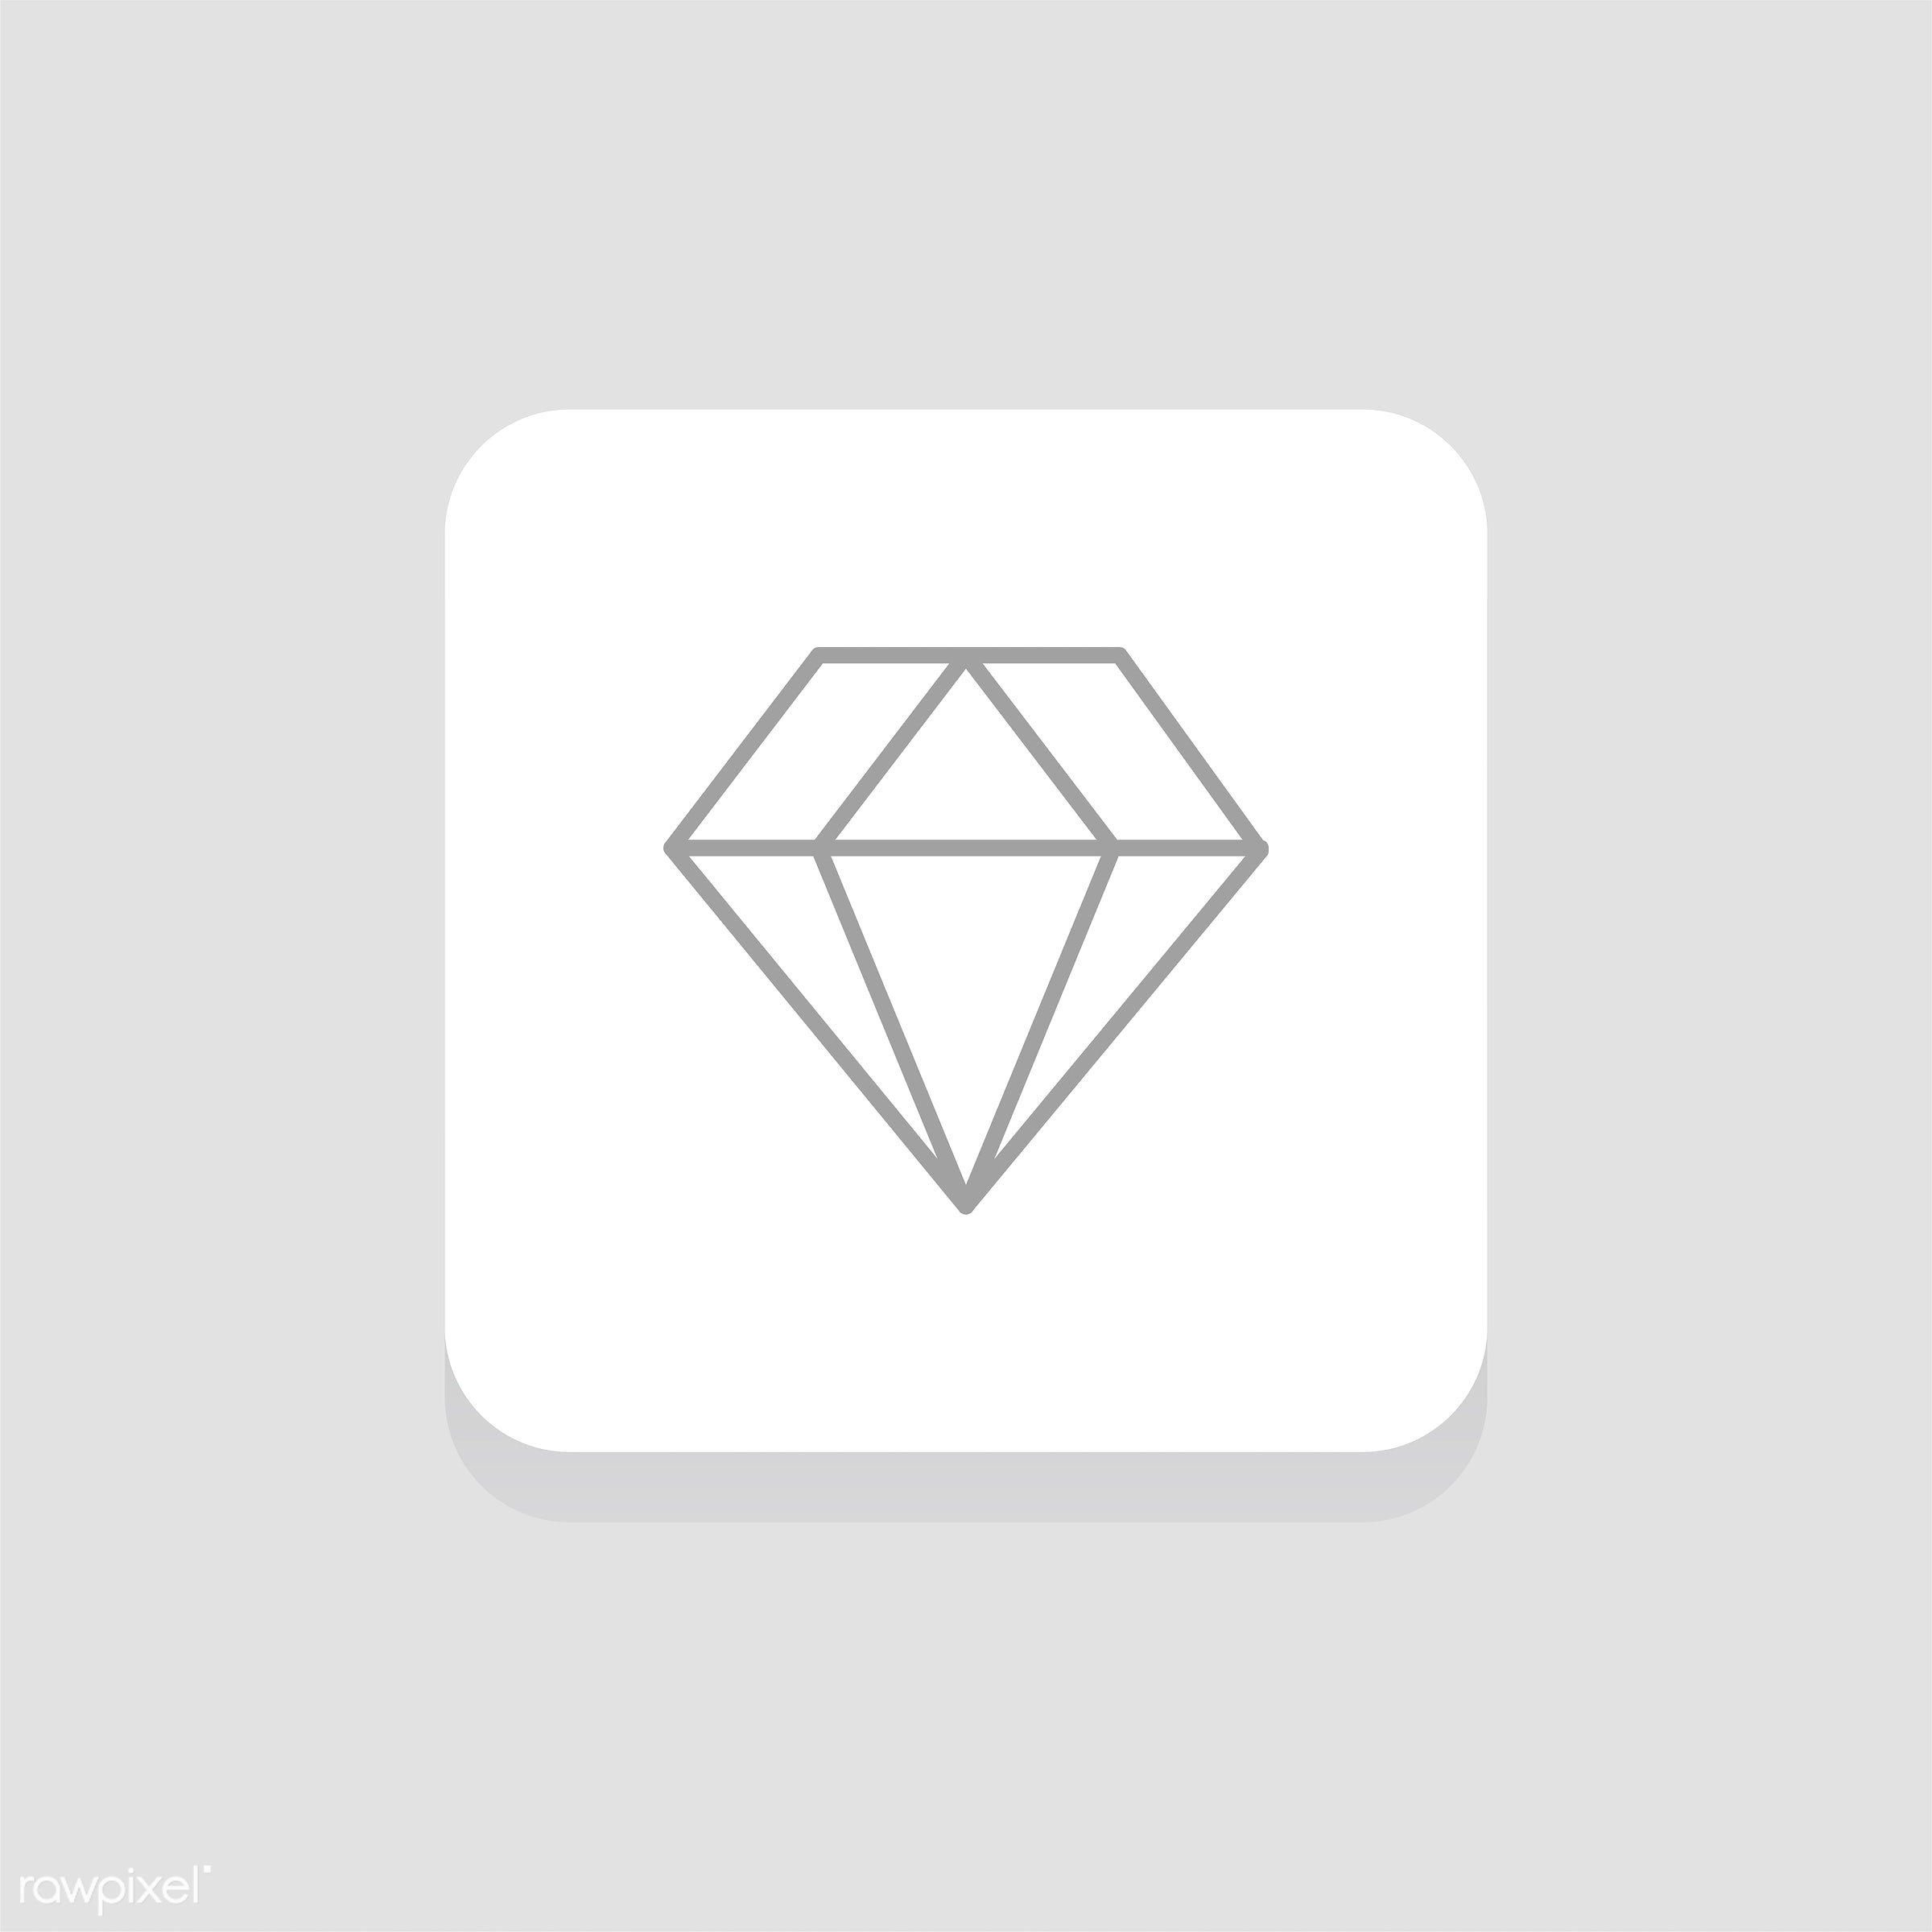 Vector of edit tool icon - design, flat, graphic, icon, illustration, isolated, layout, style, symbol, vector, web, website...